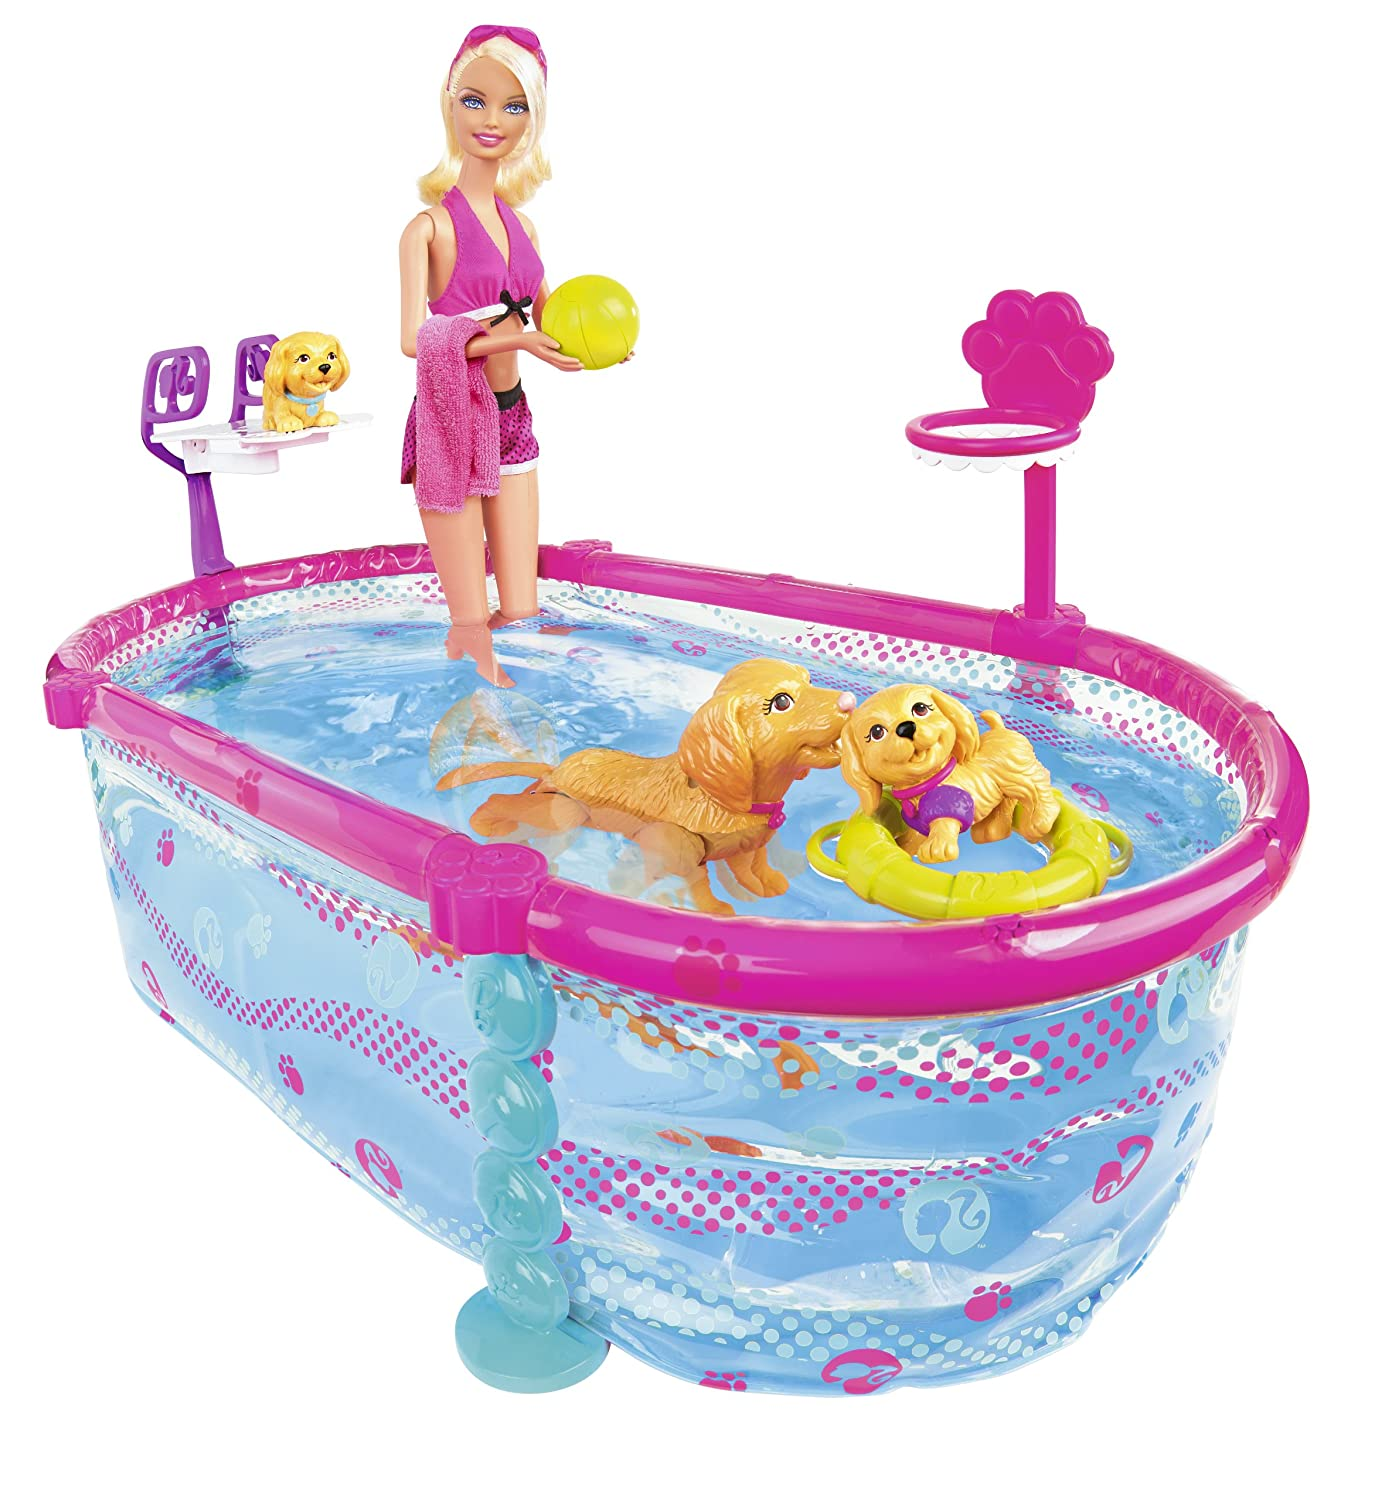 De gustibus connection 10 wolfgang kerschbaumer la for Piscina di barbie